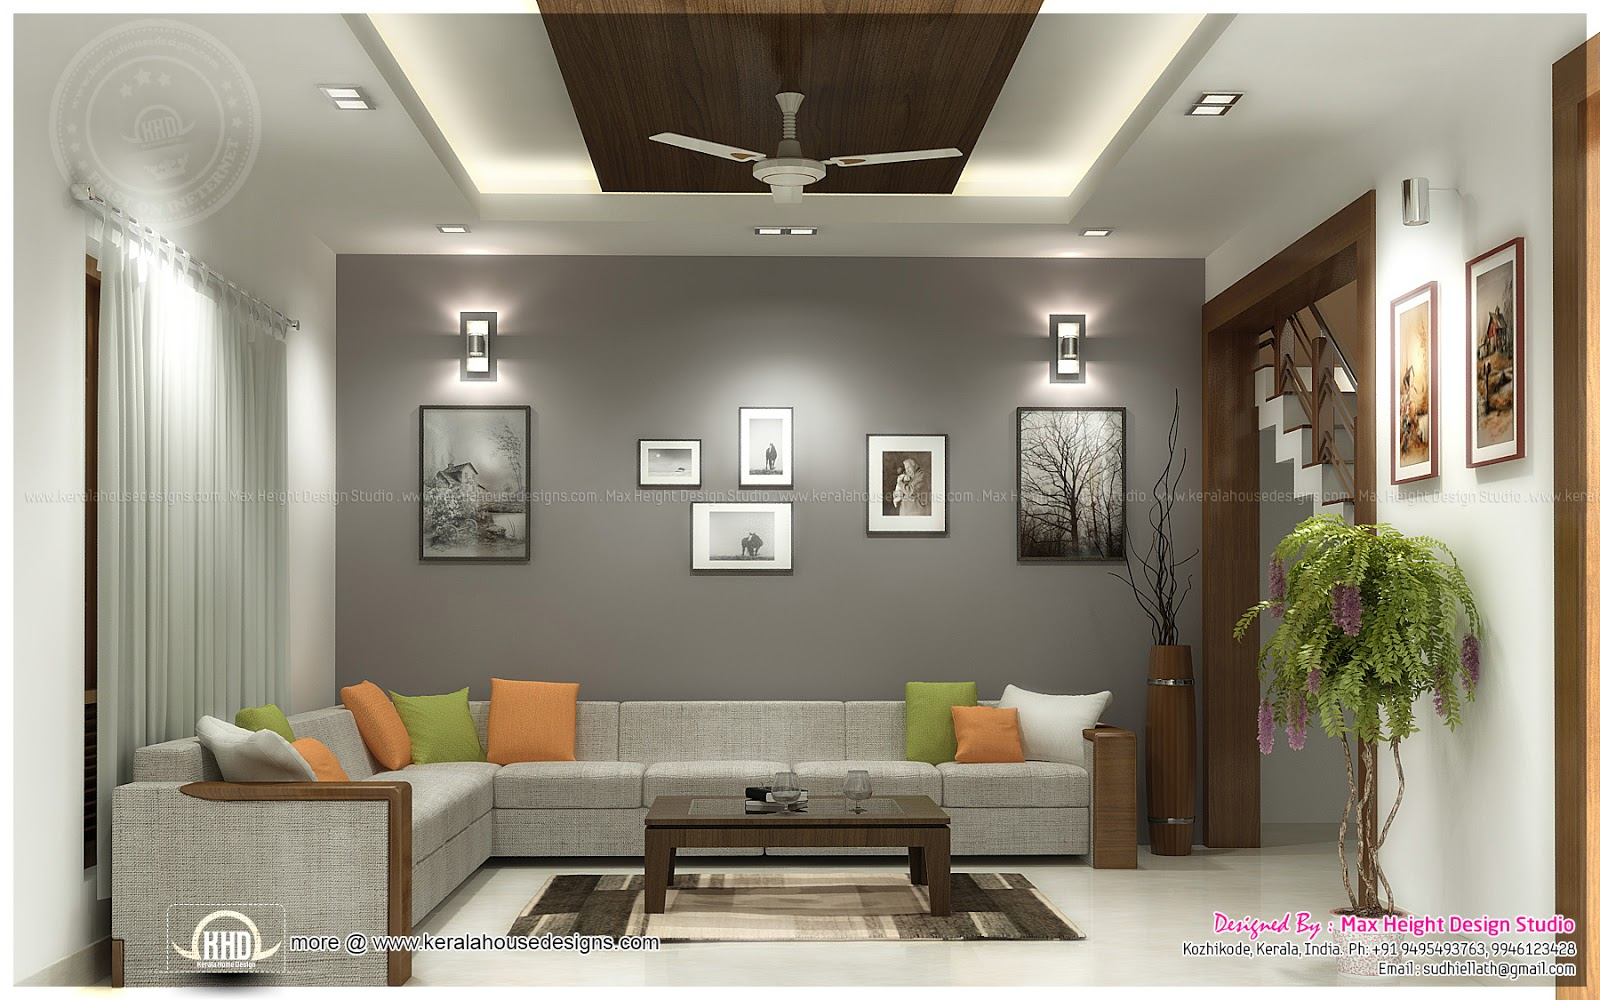 Beautiful interior ideas for home kerala home design and for Picture of interior designs of house